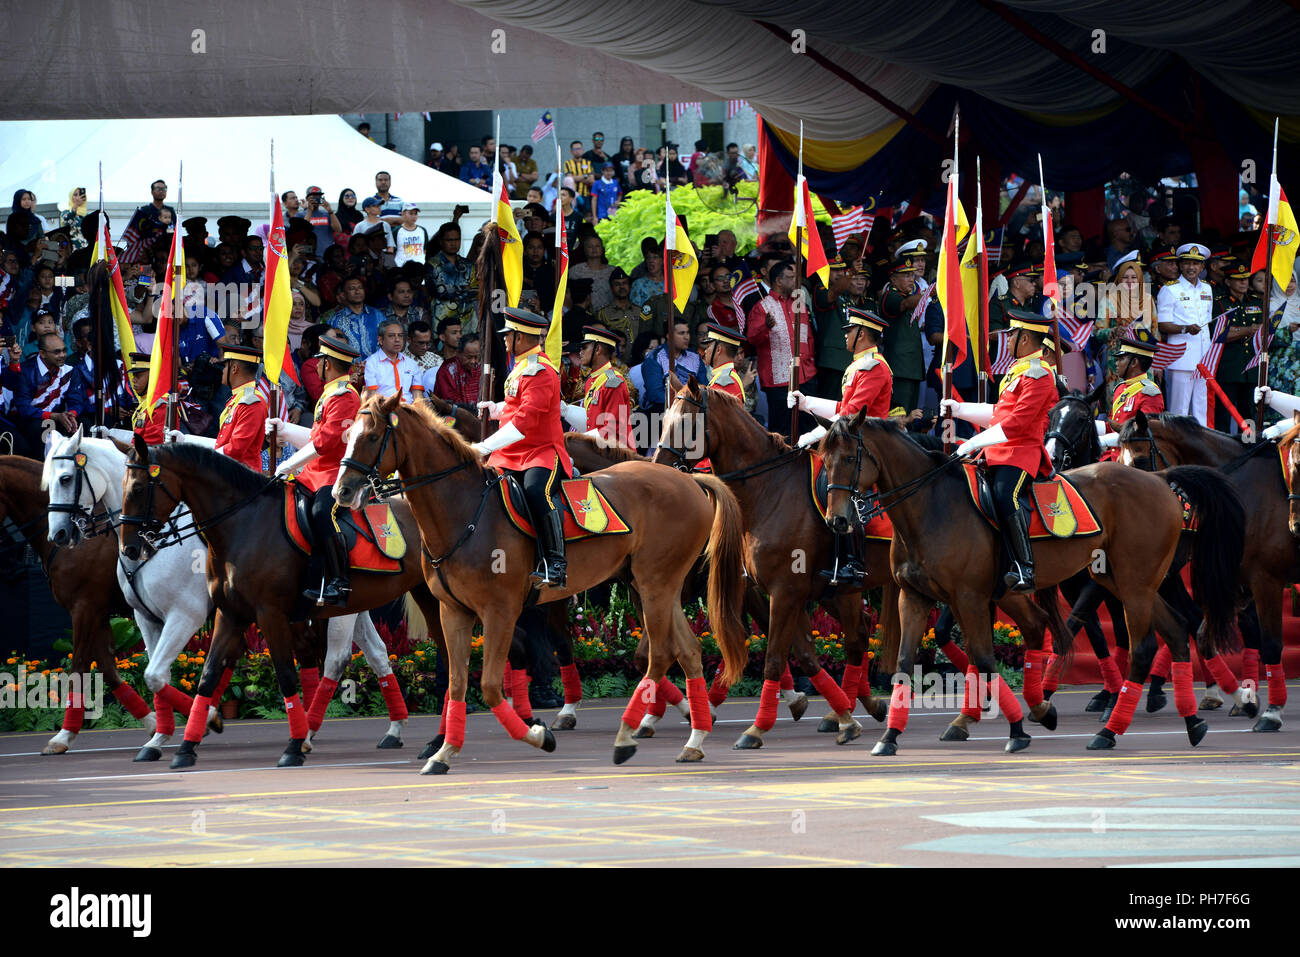 Putrajaya, Malaysia. 31st Aug, 2018. Malaysia's royal cavalries are seen during the 61st National Day celebrations in Putrajaya, Malaysia, on Aug. 31, 2018. Credit: Chong Voon Chung/Xinhua/Alamy Live News - Stock Image